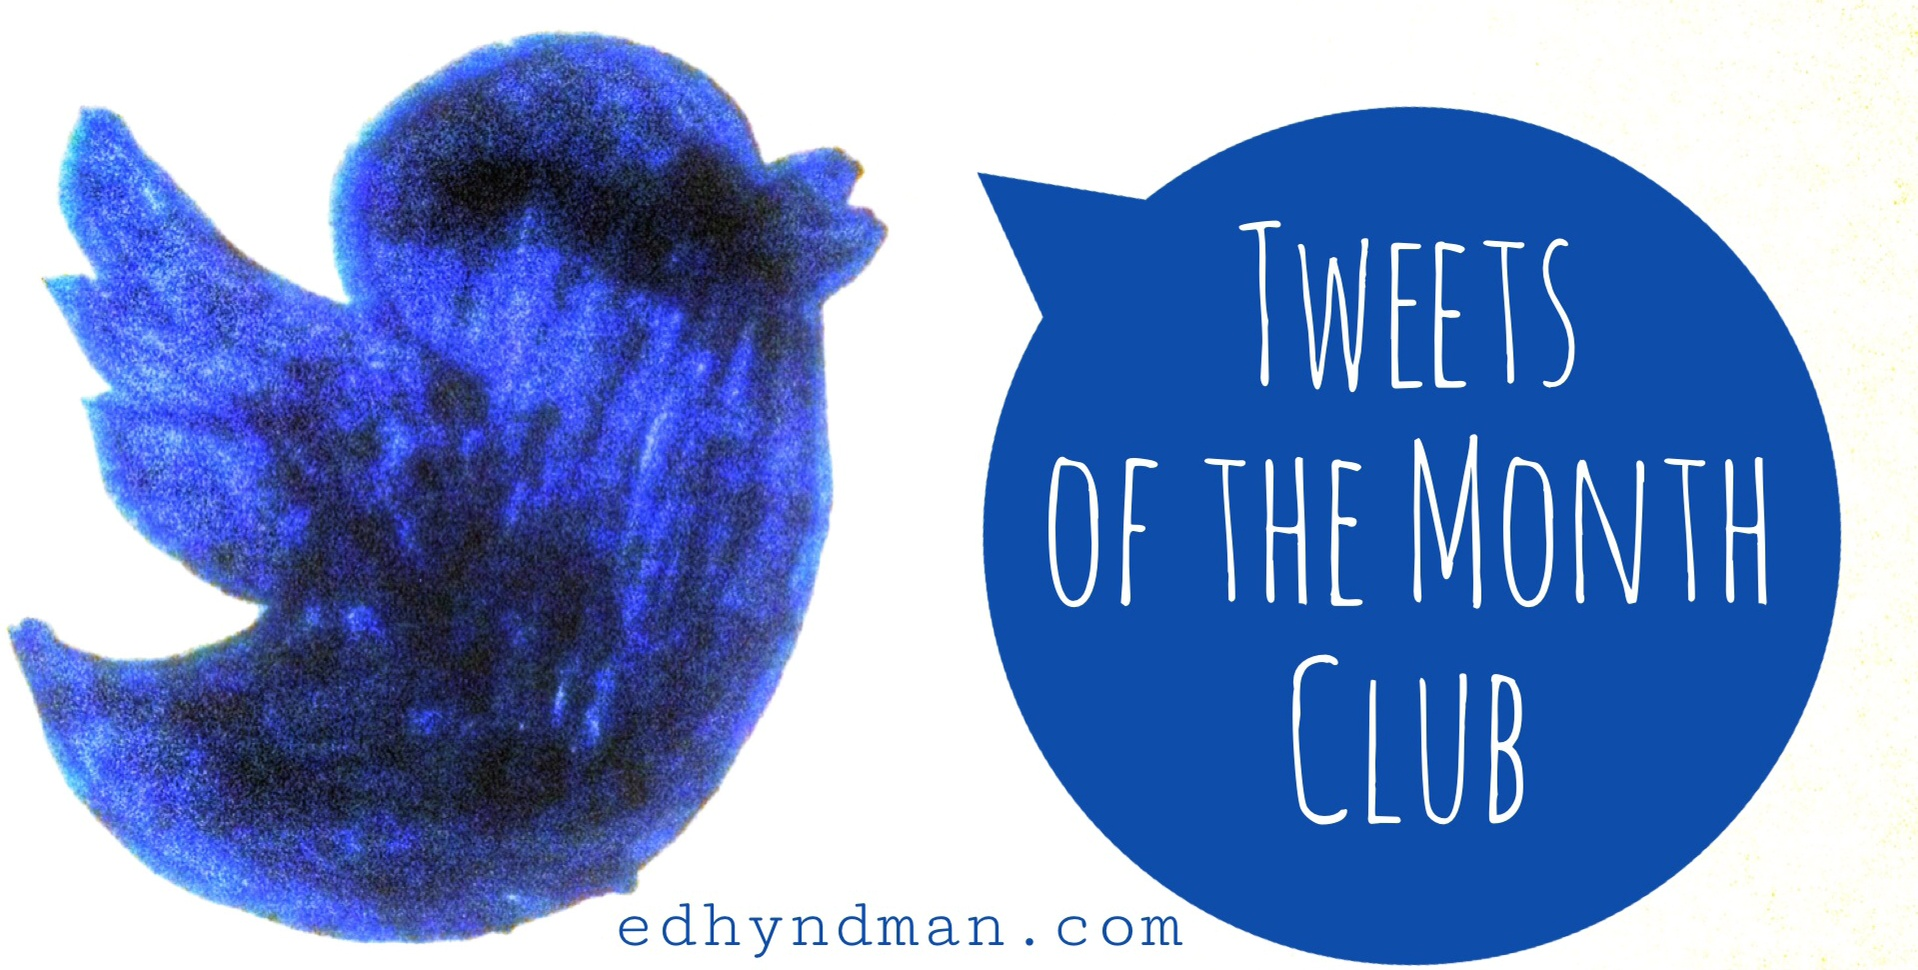 Tweets of the Month Club | July 2017